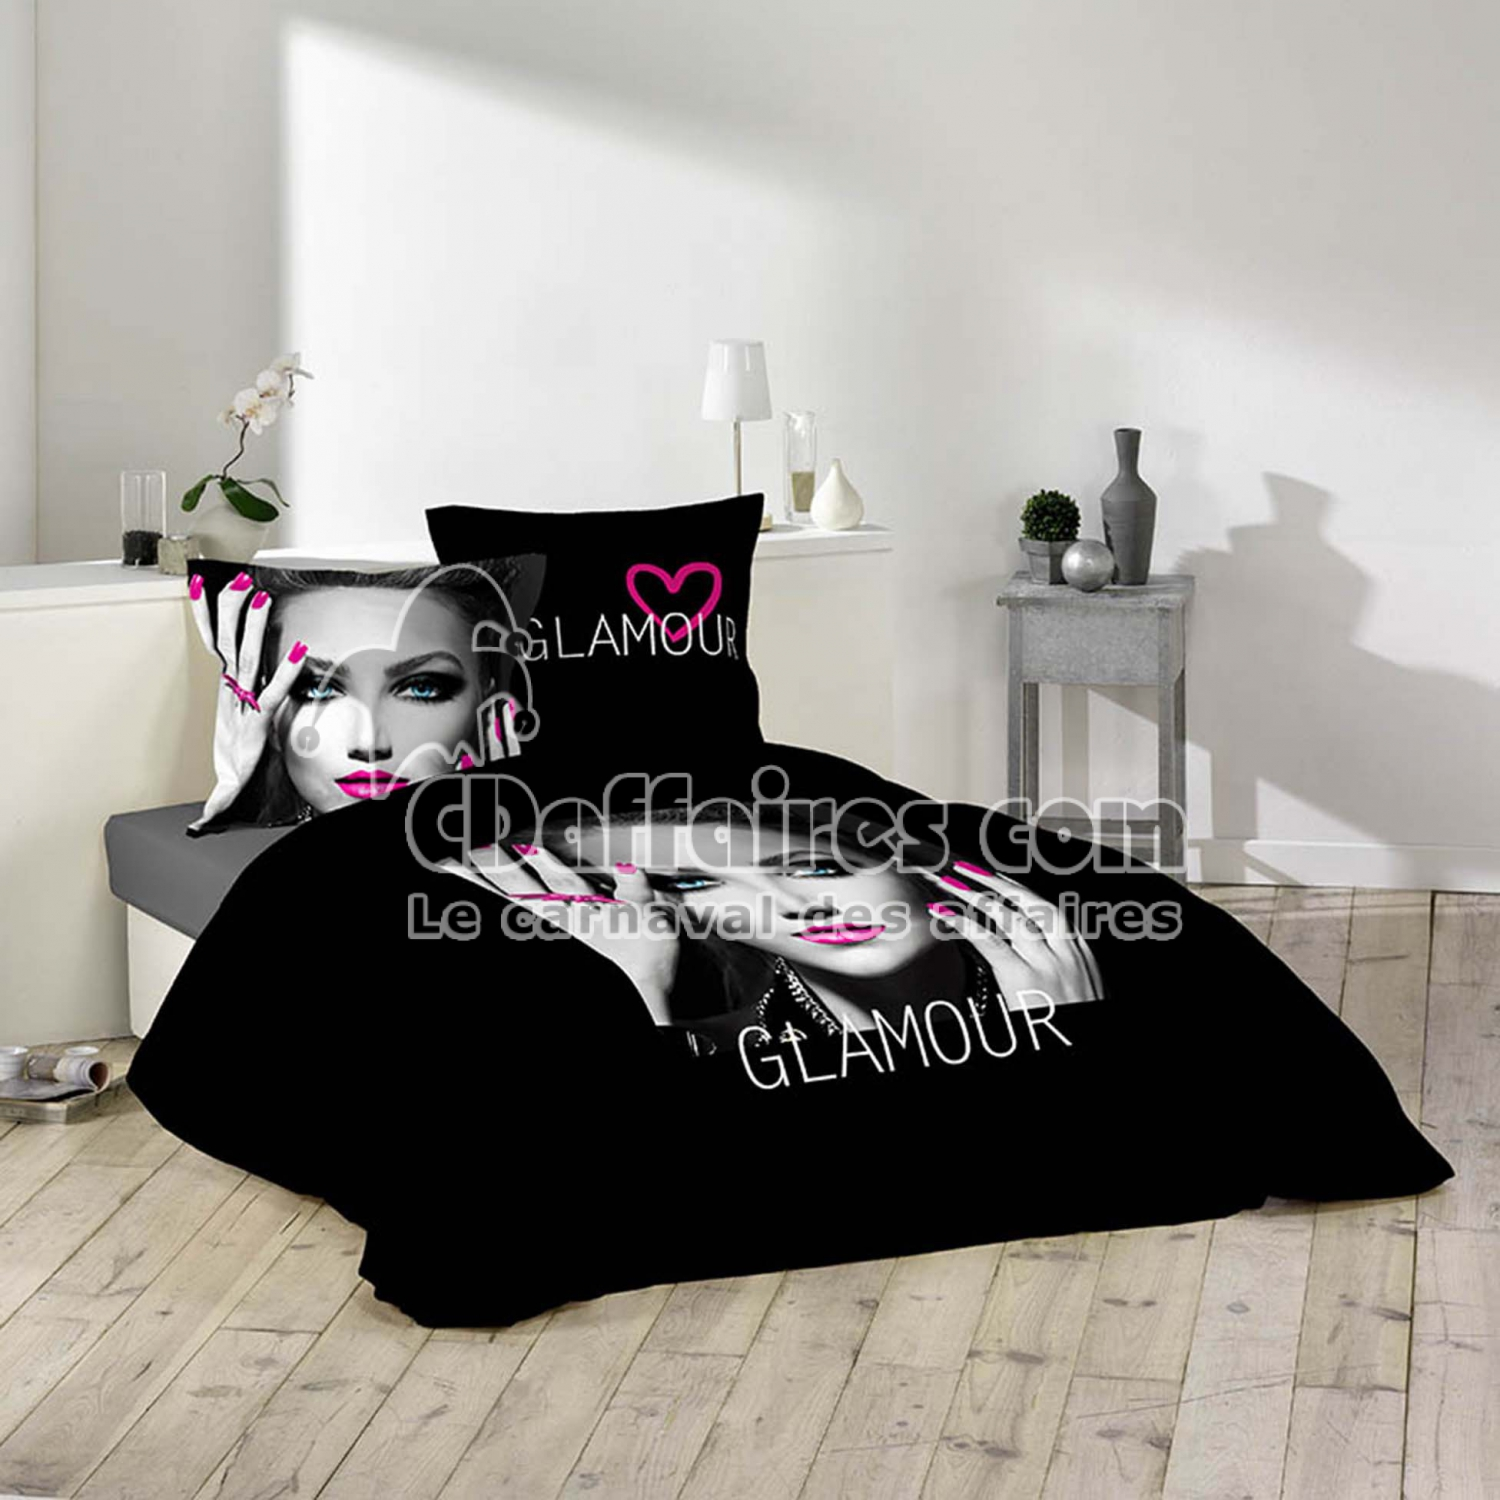 parures chambre ado cdaffaires. Black Bedroom Furniture Sets. Home Design Ideas